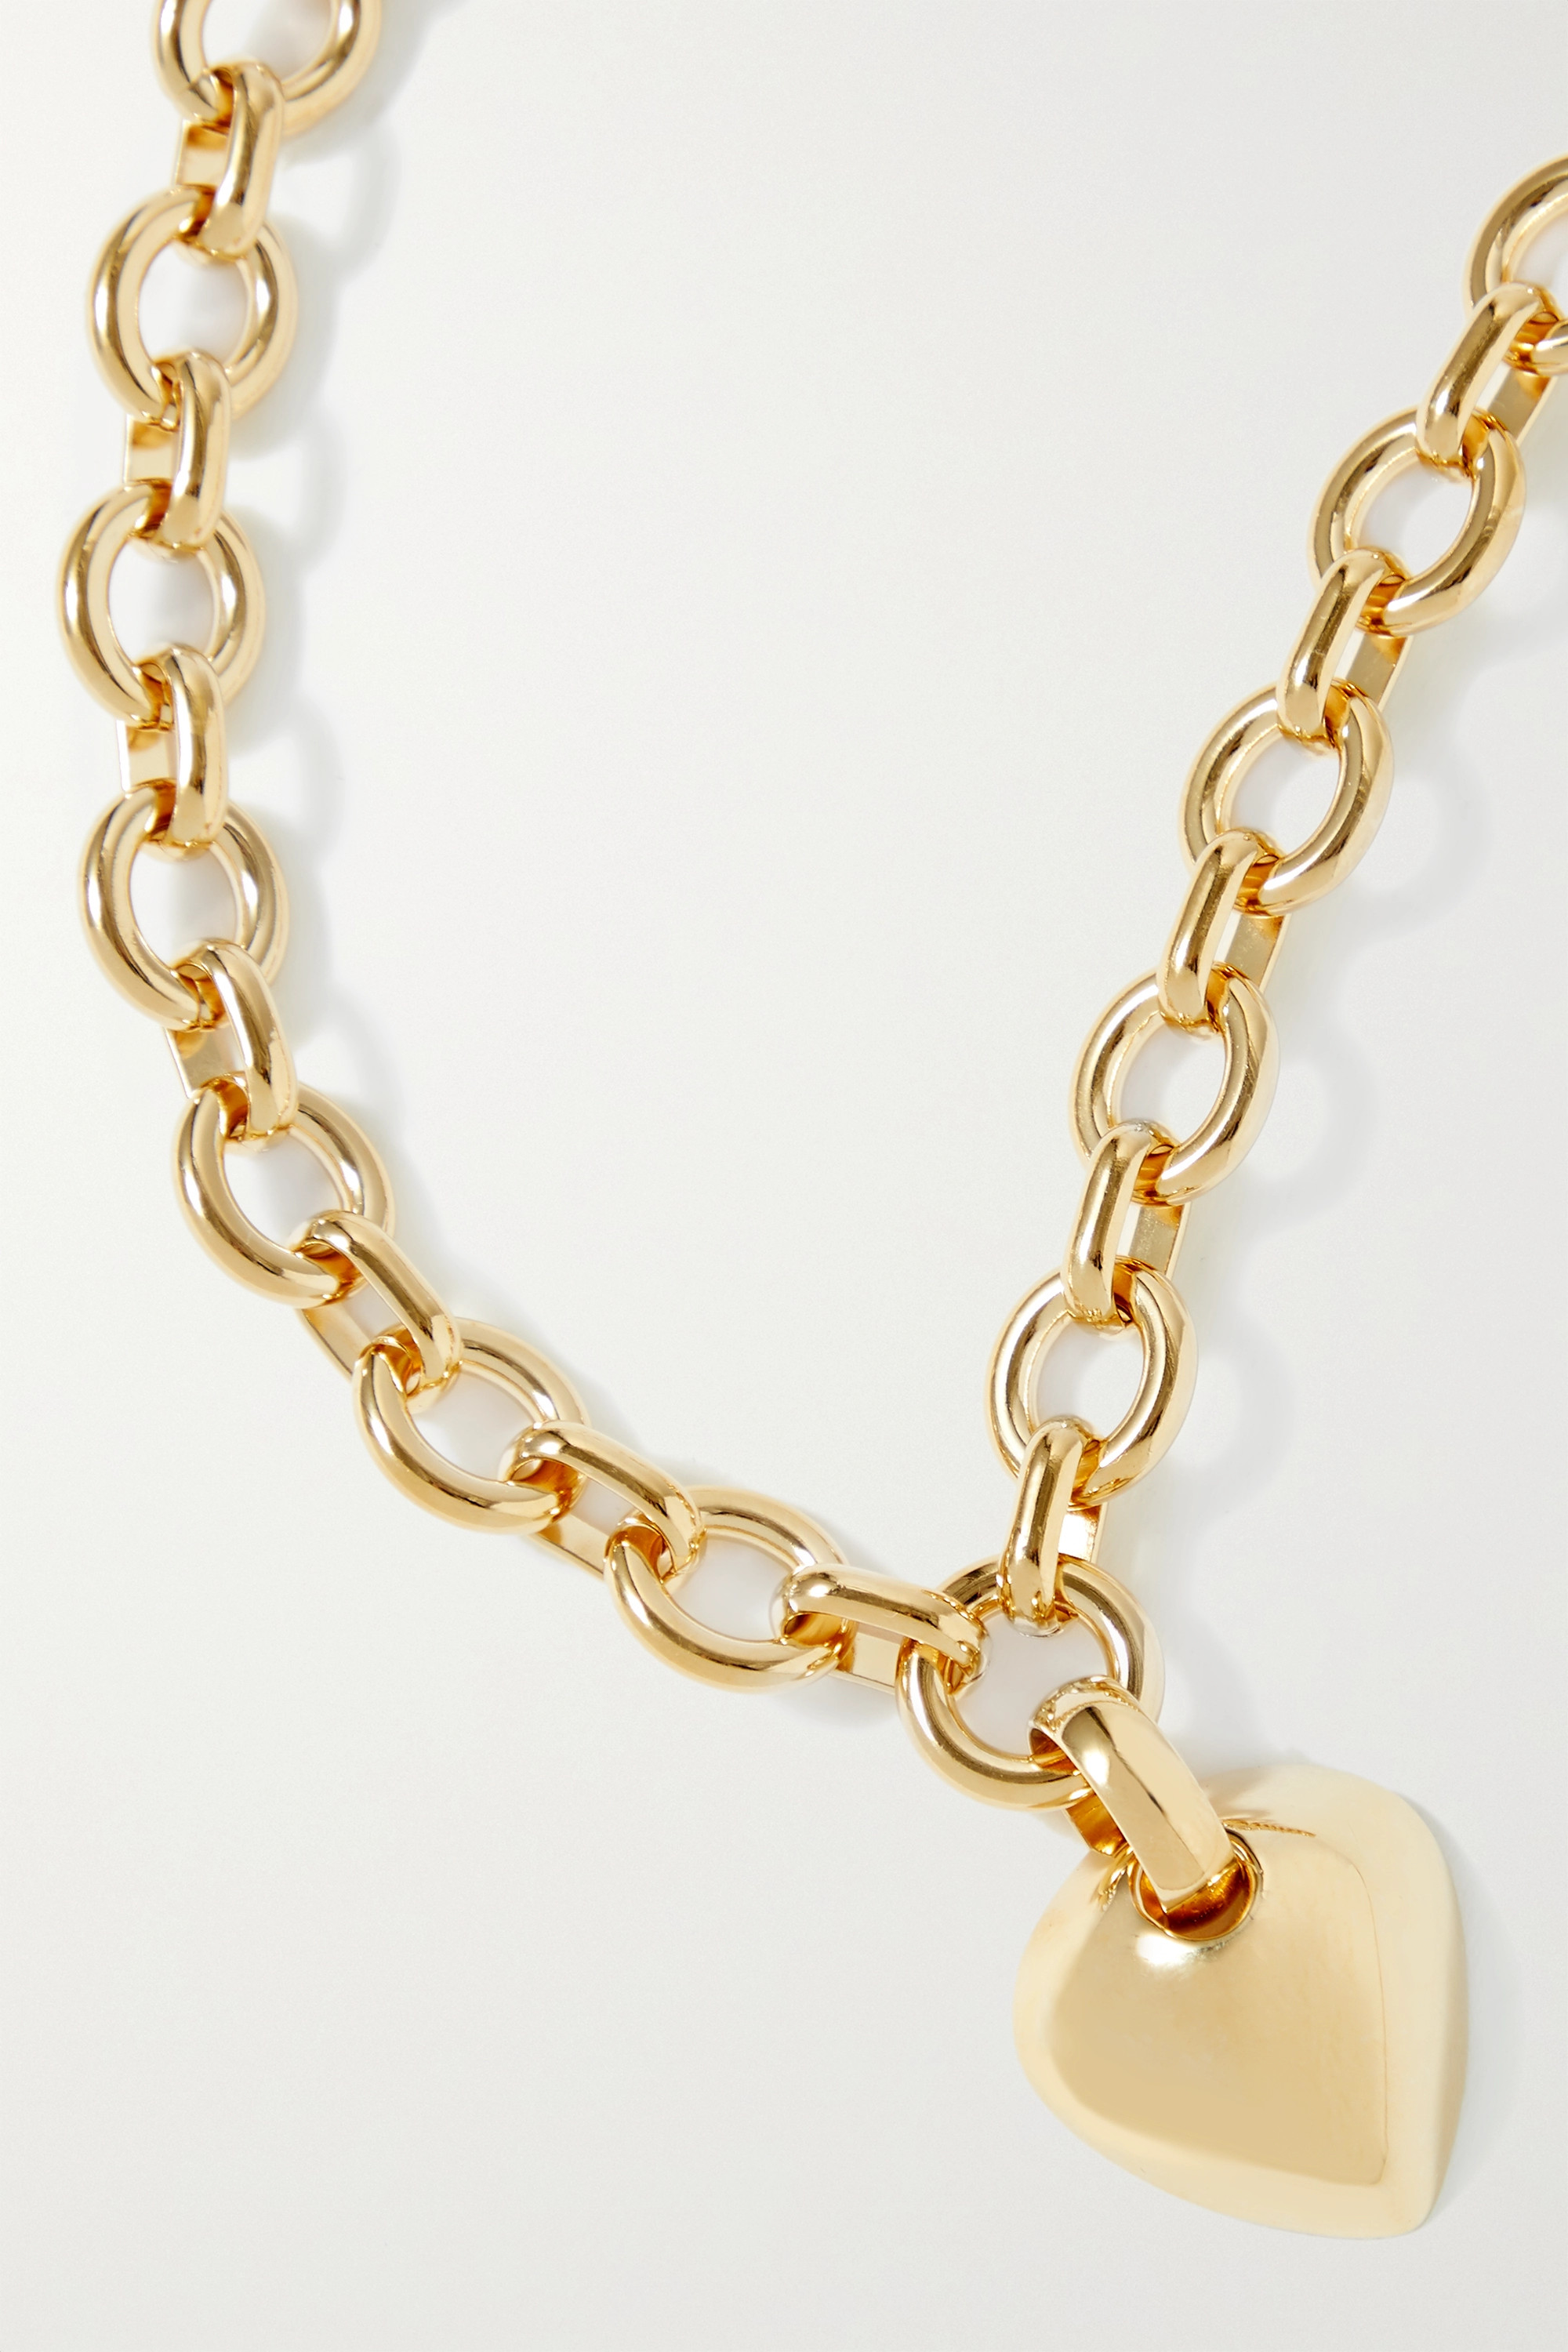 Laura Lombardi Luisa gold-plated necklace